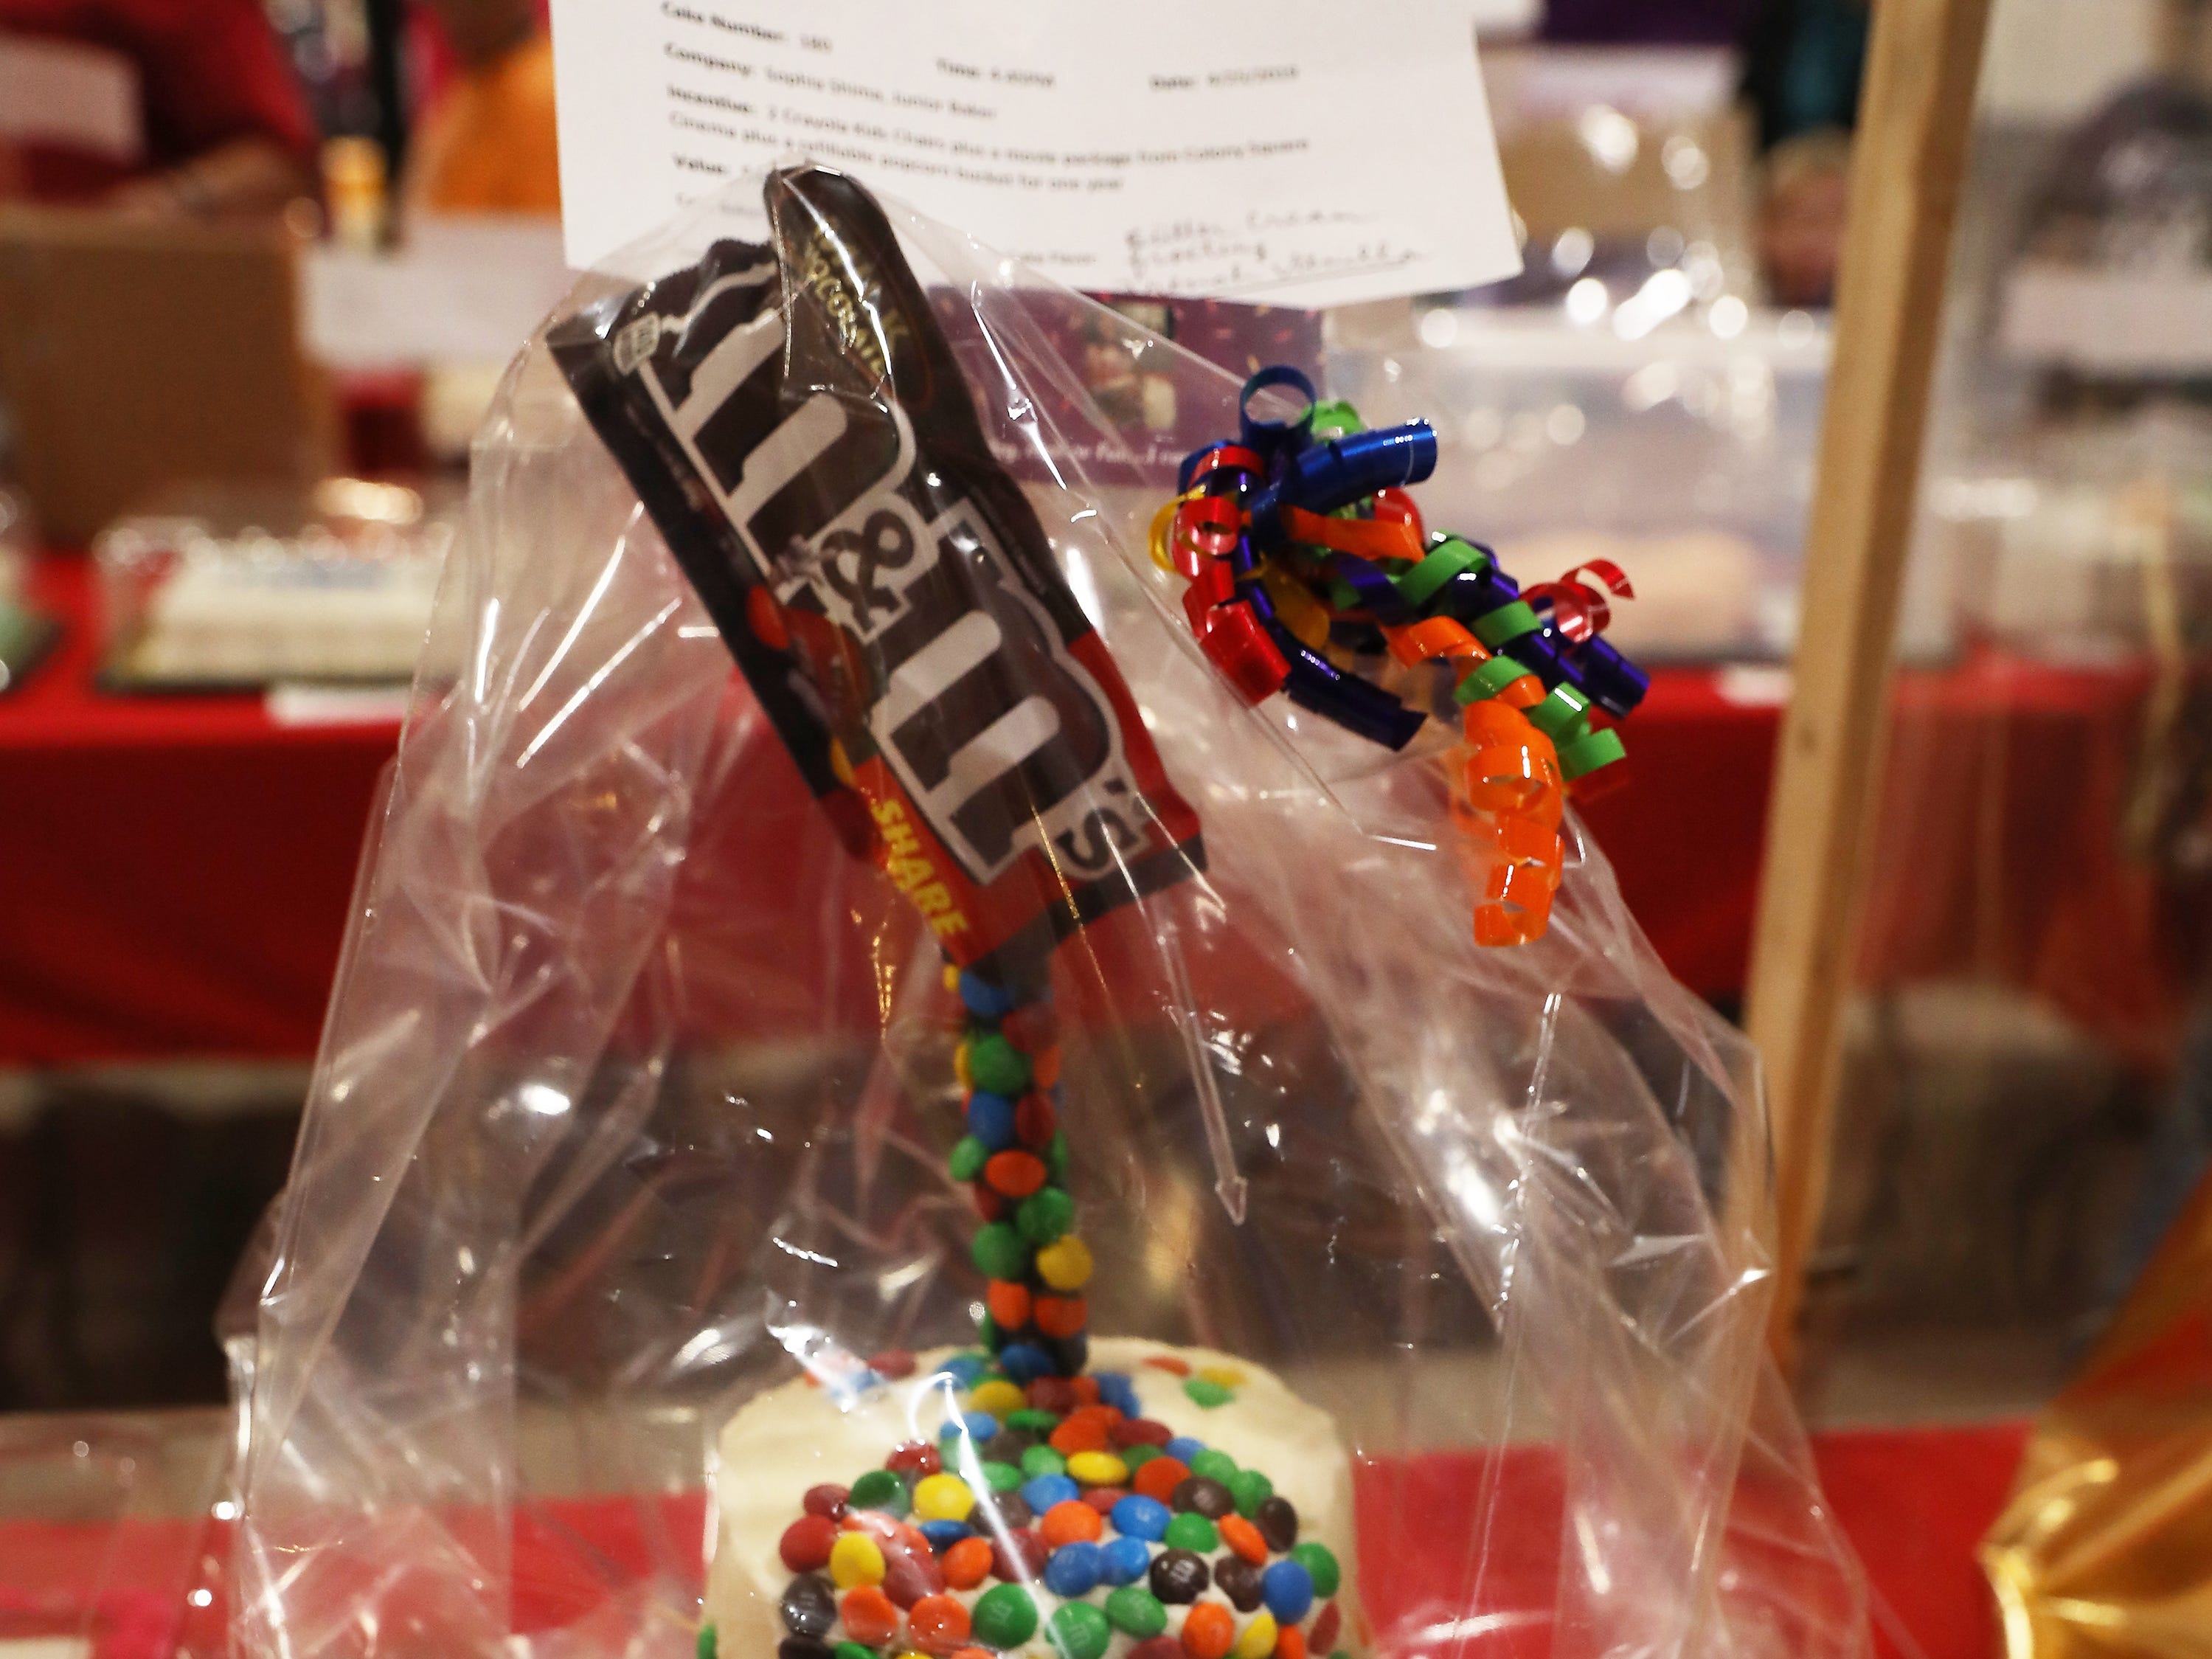 4:45 P.M. Thursday cake 180 Sophia Shima - 2 Crayola kids chairs,movie package from Cinemark